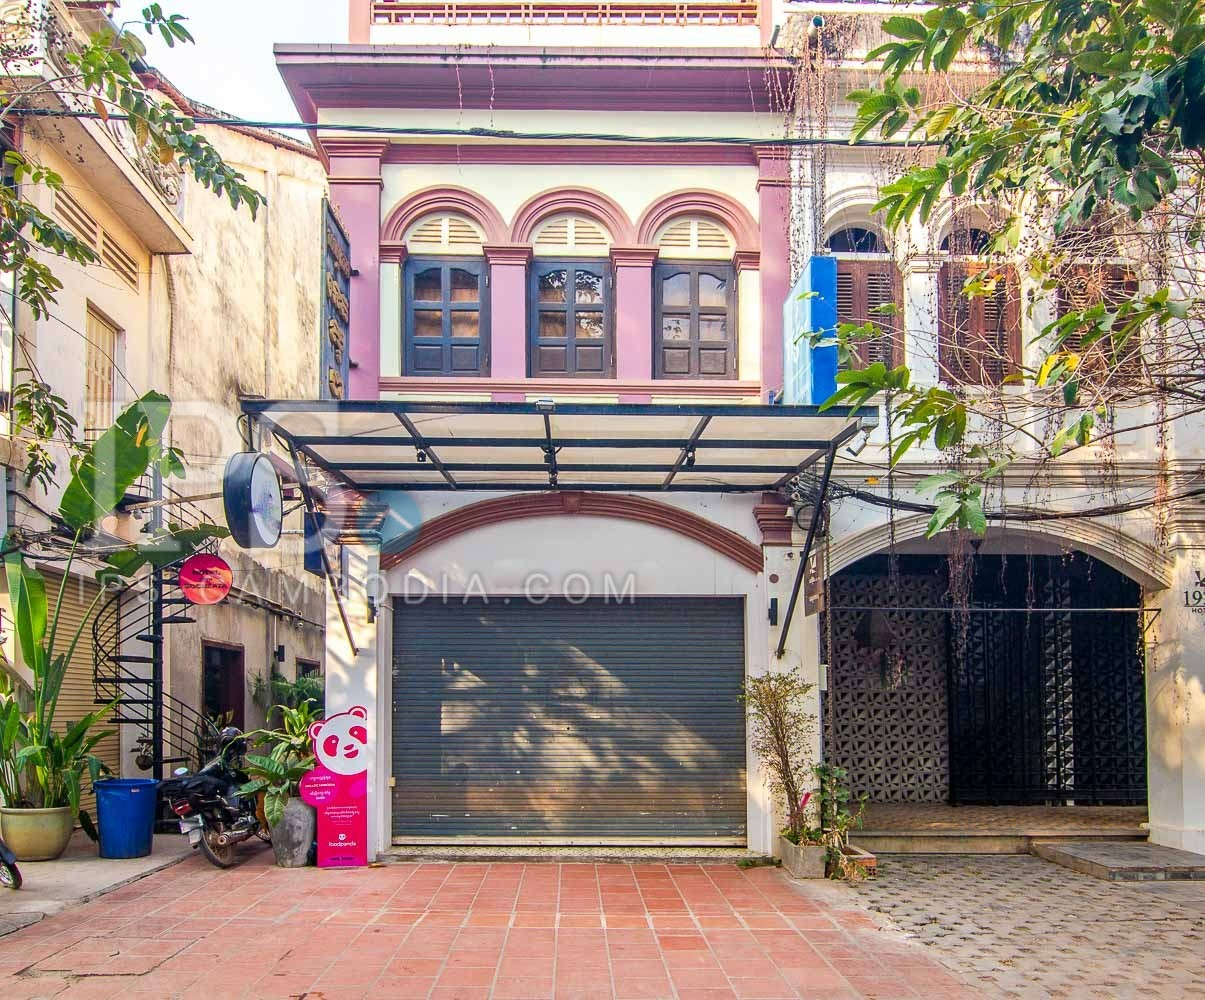 7 Bedroom Shophouse  For Sale - Old Market  Pub Street, Siem Reap